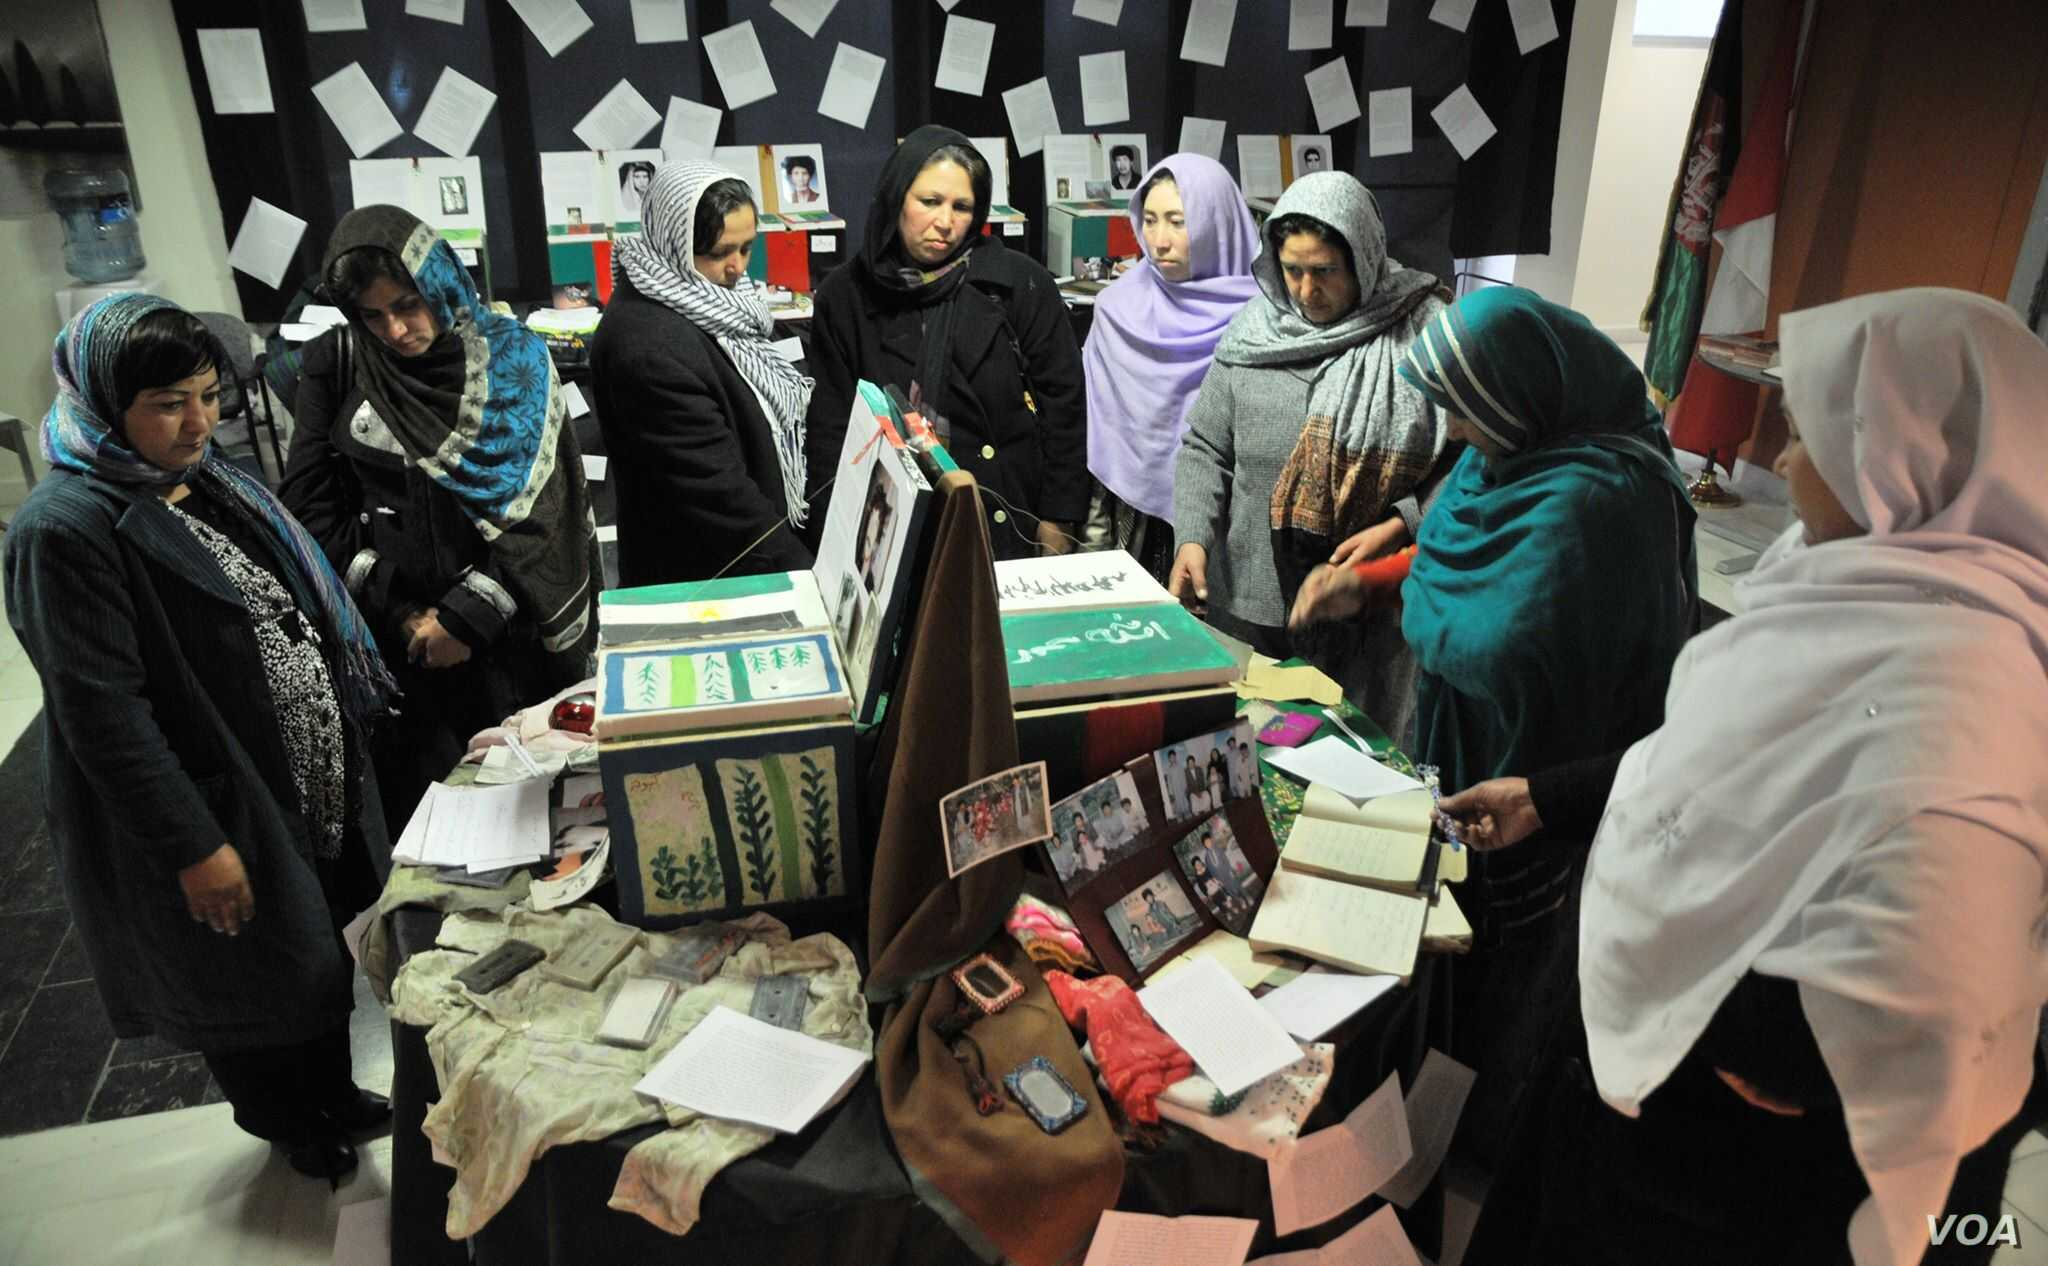 A group of women looking at the war victims mementos boxes during a workshop in Kabul Afghanistan. (Photo: Afghanistan Human Rights and Democracy Organization)